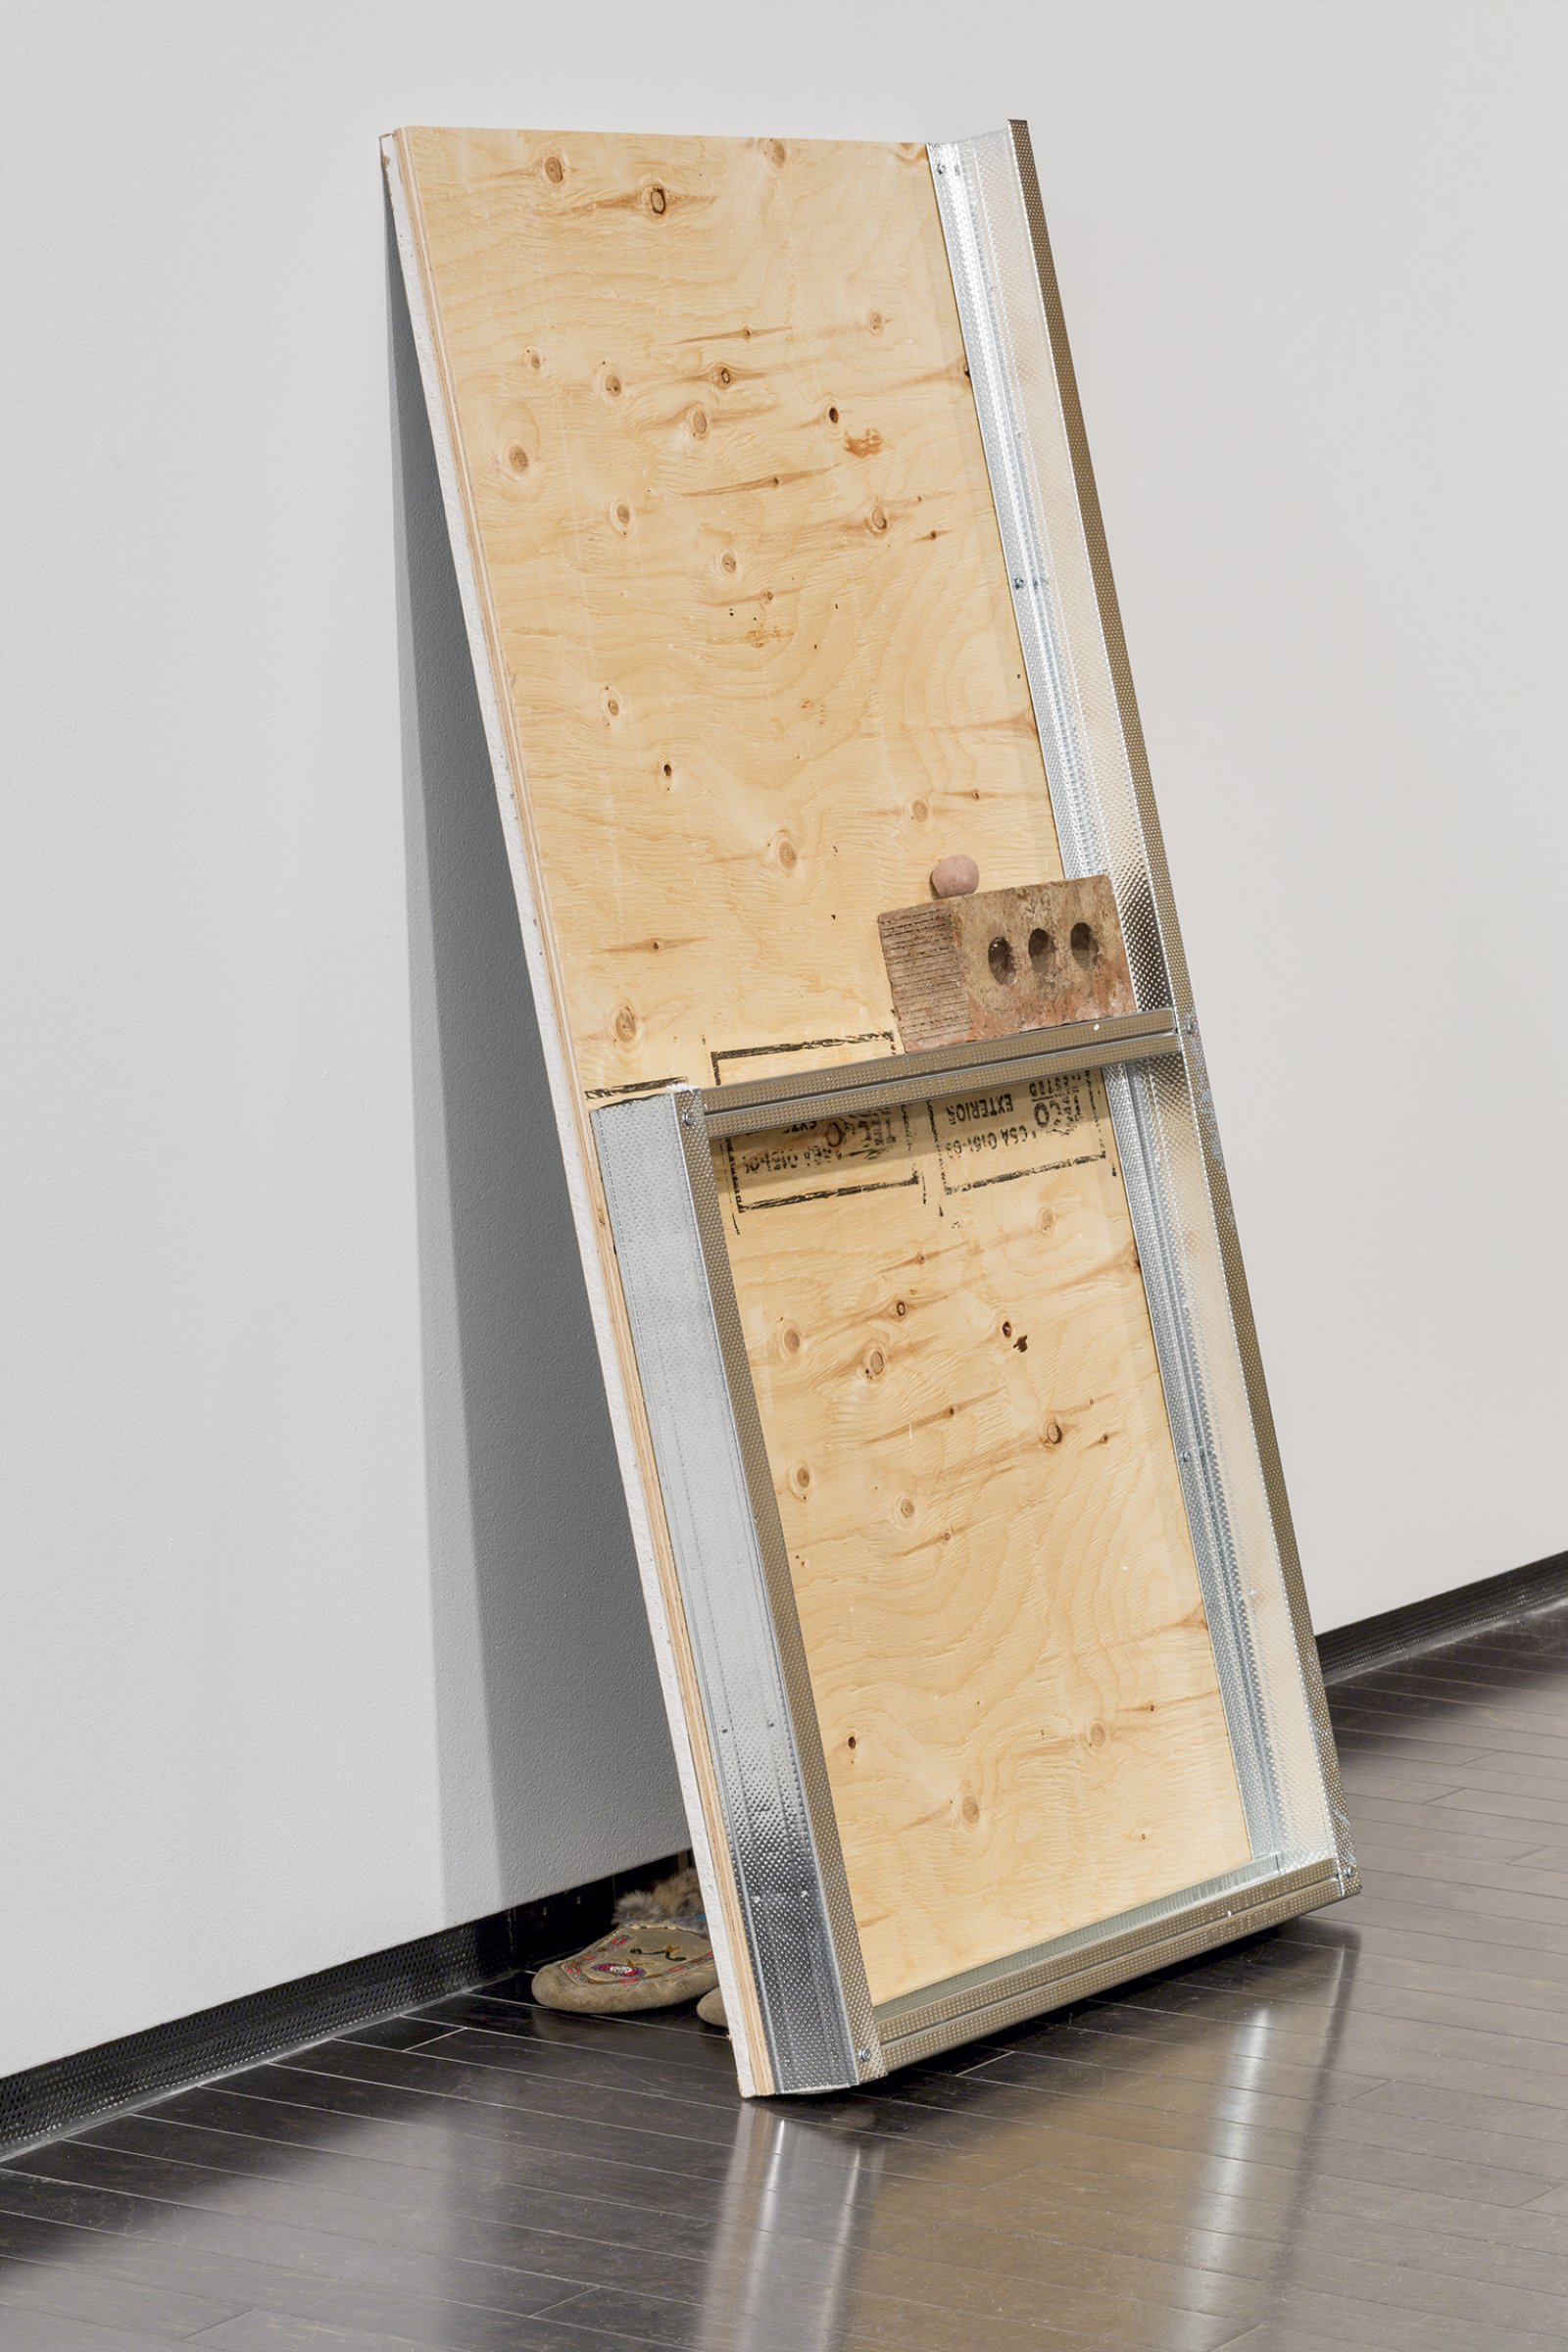 Duane Linklater, Id (detail), 2016, drywall, plywood, steel framing, clay, found brick, moose hide moccasins two wall components,  each: 48 x 5 x 24 in. (121 x 13 x 61 cm)